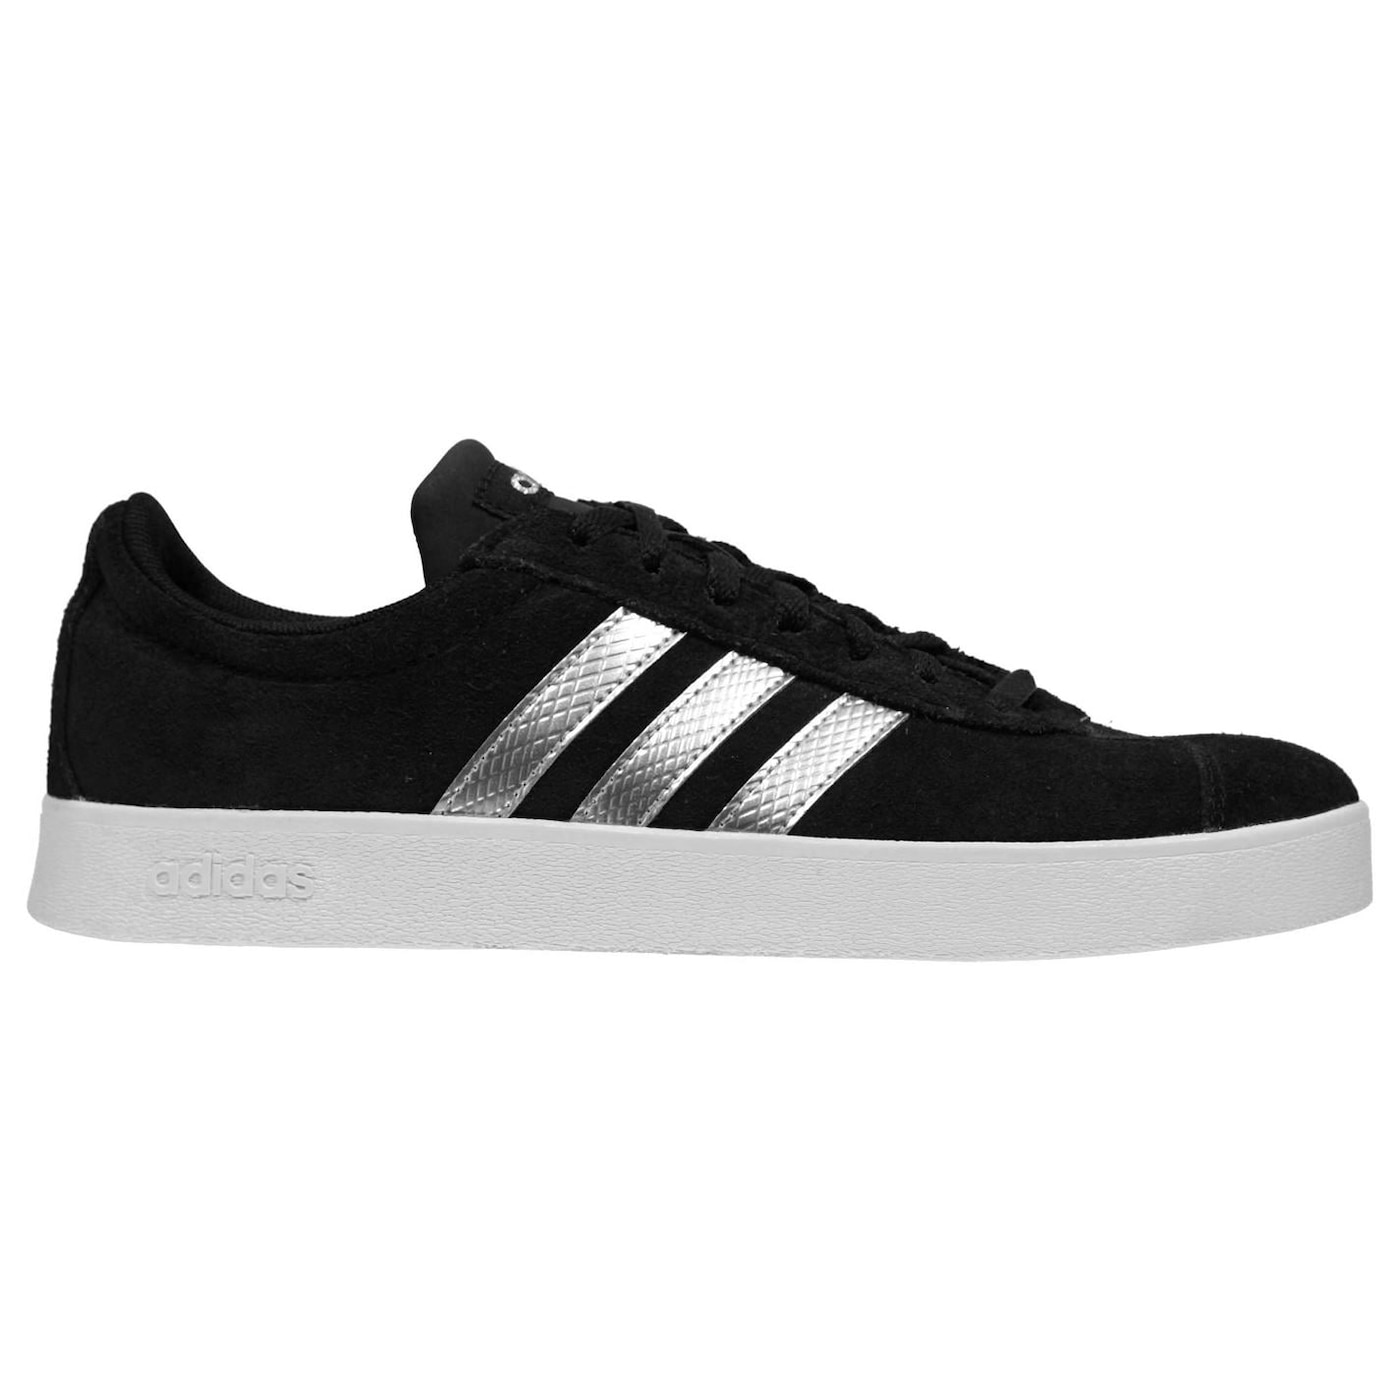 Adidas VL Court Suede Ladies Trainers